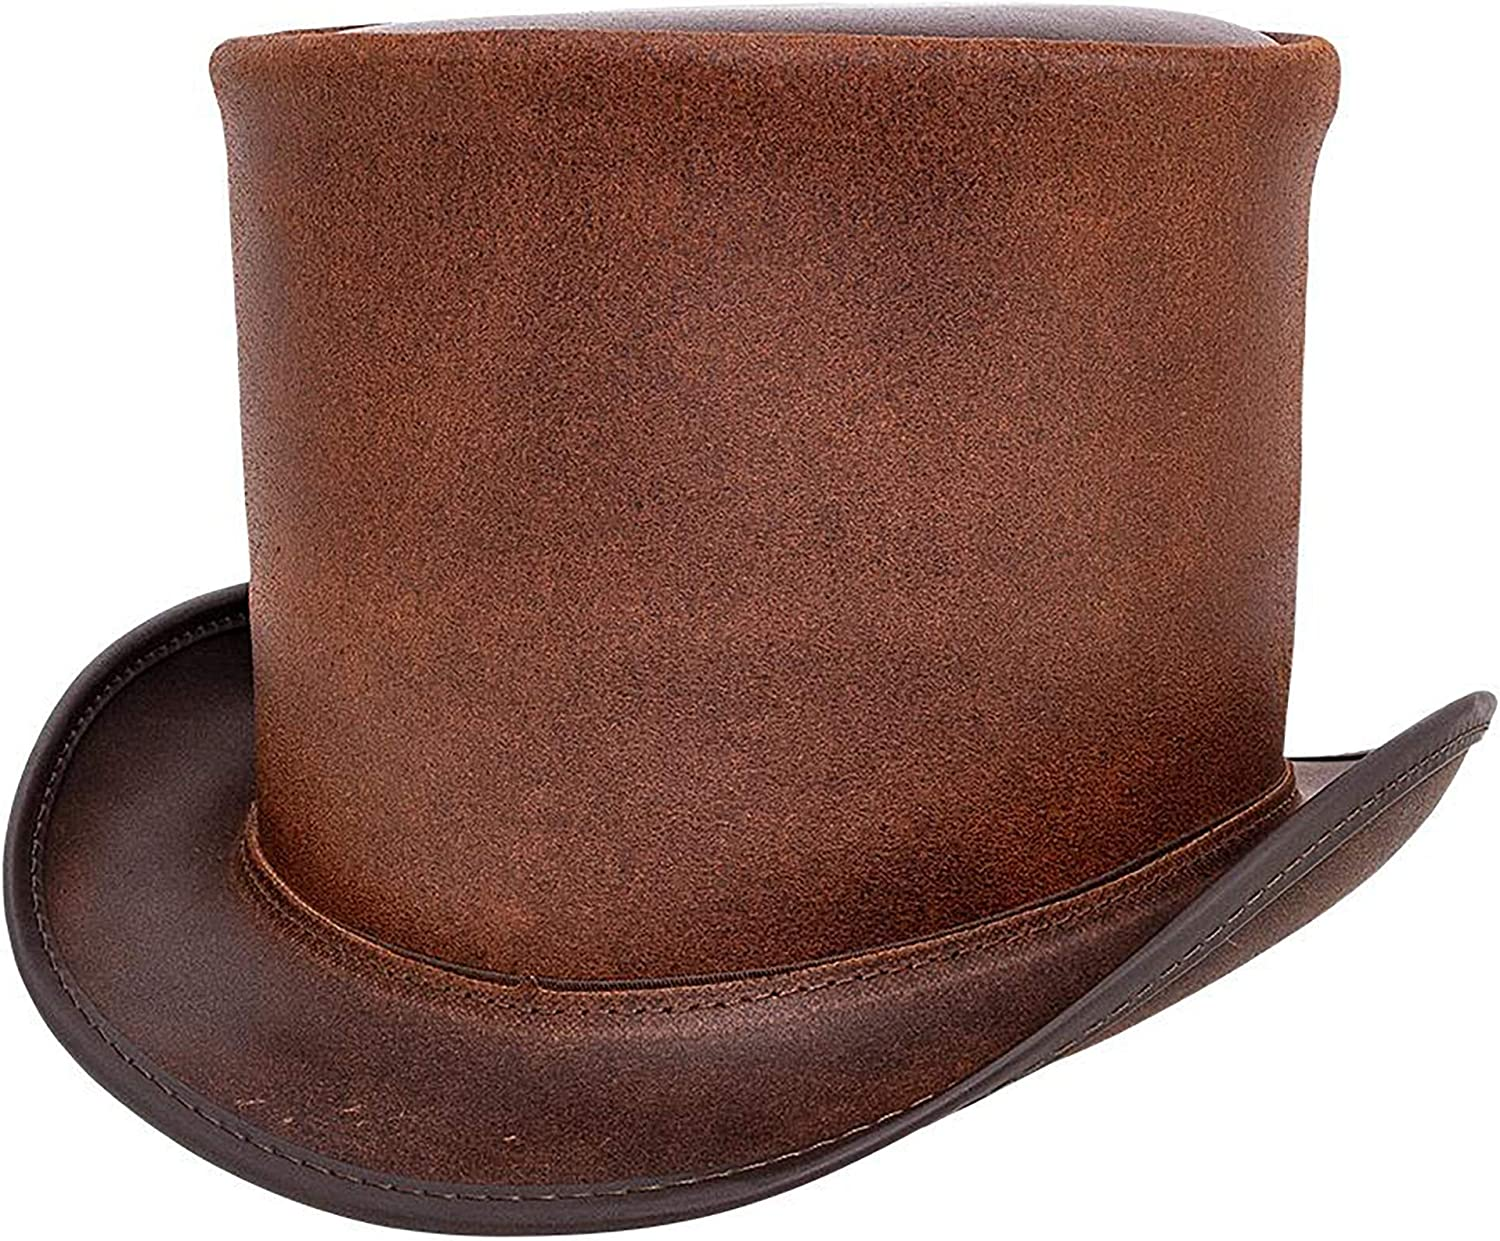 American Hat Makers Topper Very popular Top — Unbanded Tall service Handcr